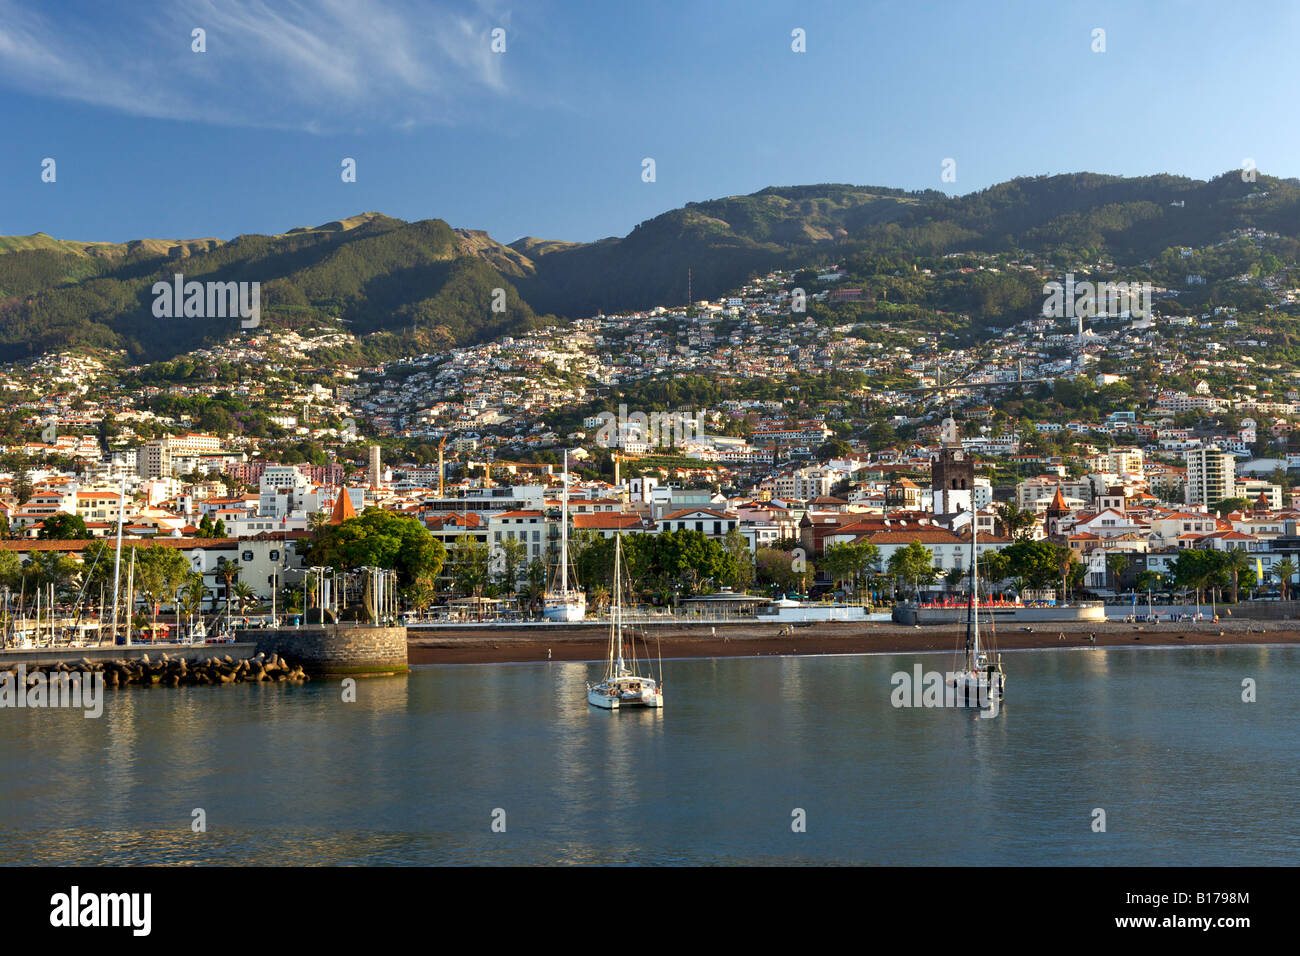 View of the town of Funchal and the Portuguese Atlantic island of Madeira. - Stock Image